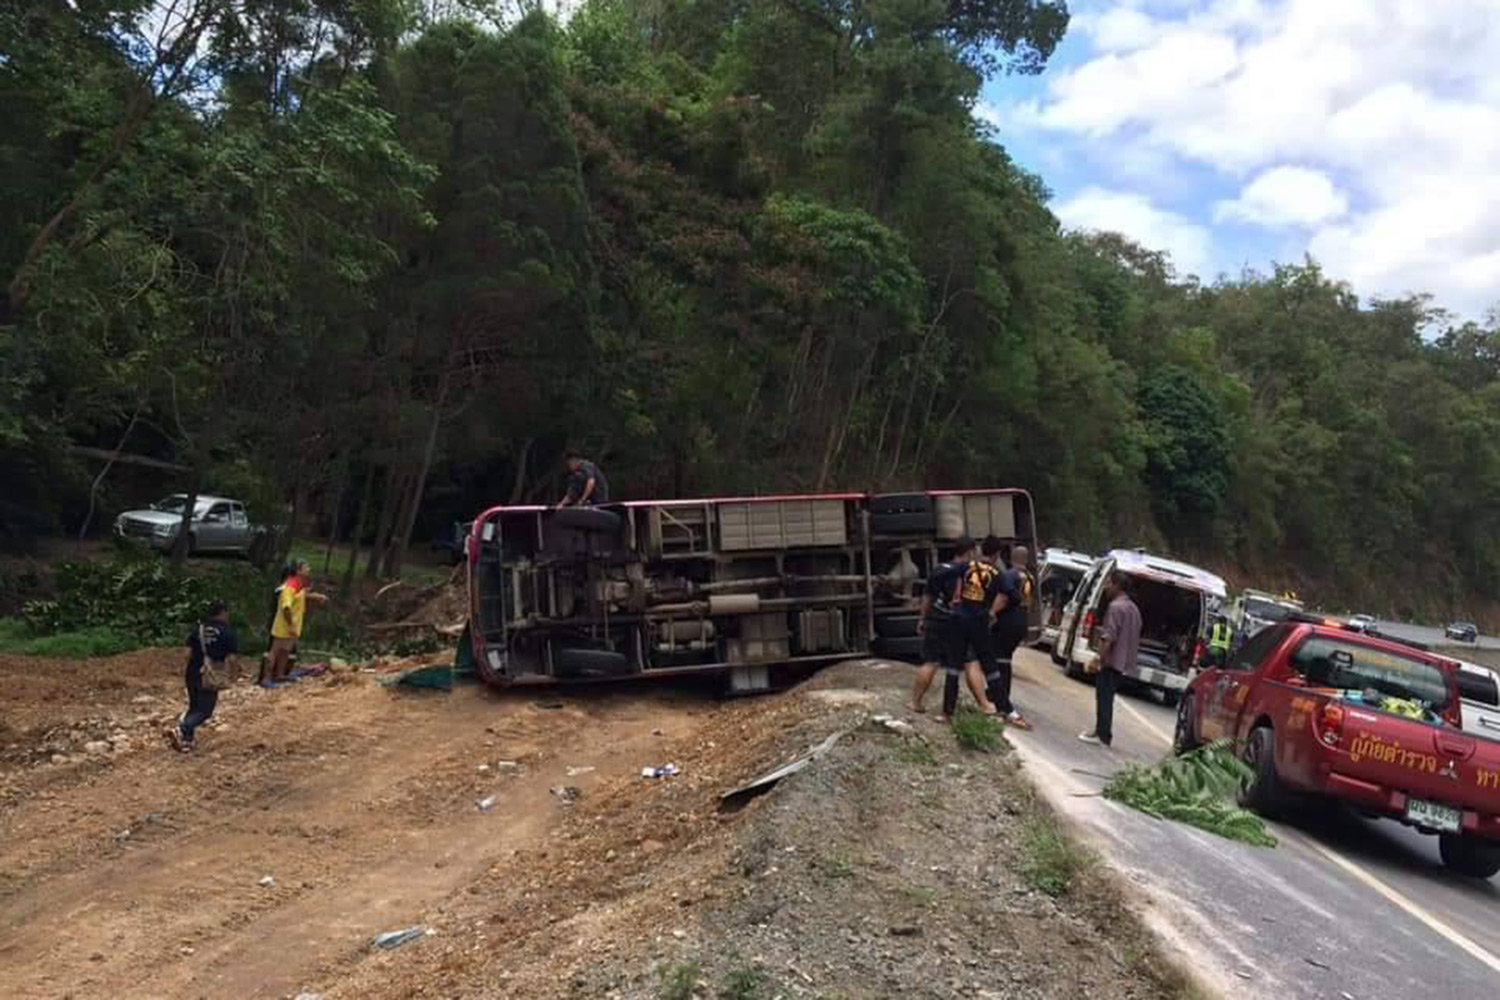 Rescue workers come to the aid of injured passengers from an overturned tour bus in Doi Saket district of Chiang Mai on Saturday afternoon. (Photo from Ruamduaychuaykan Facebook page)